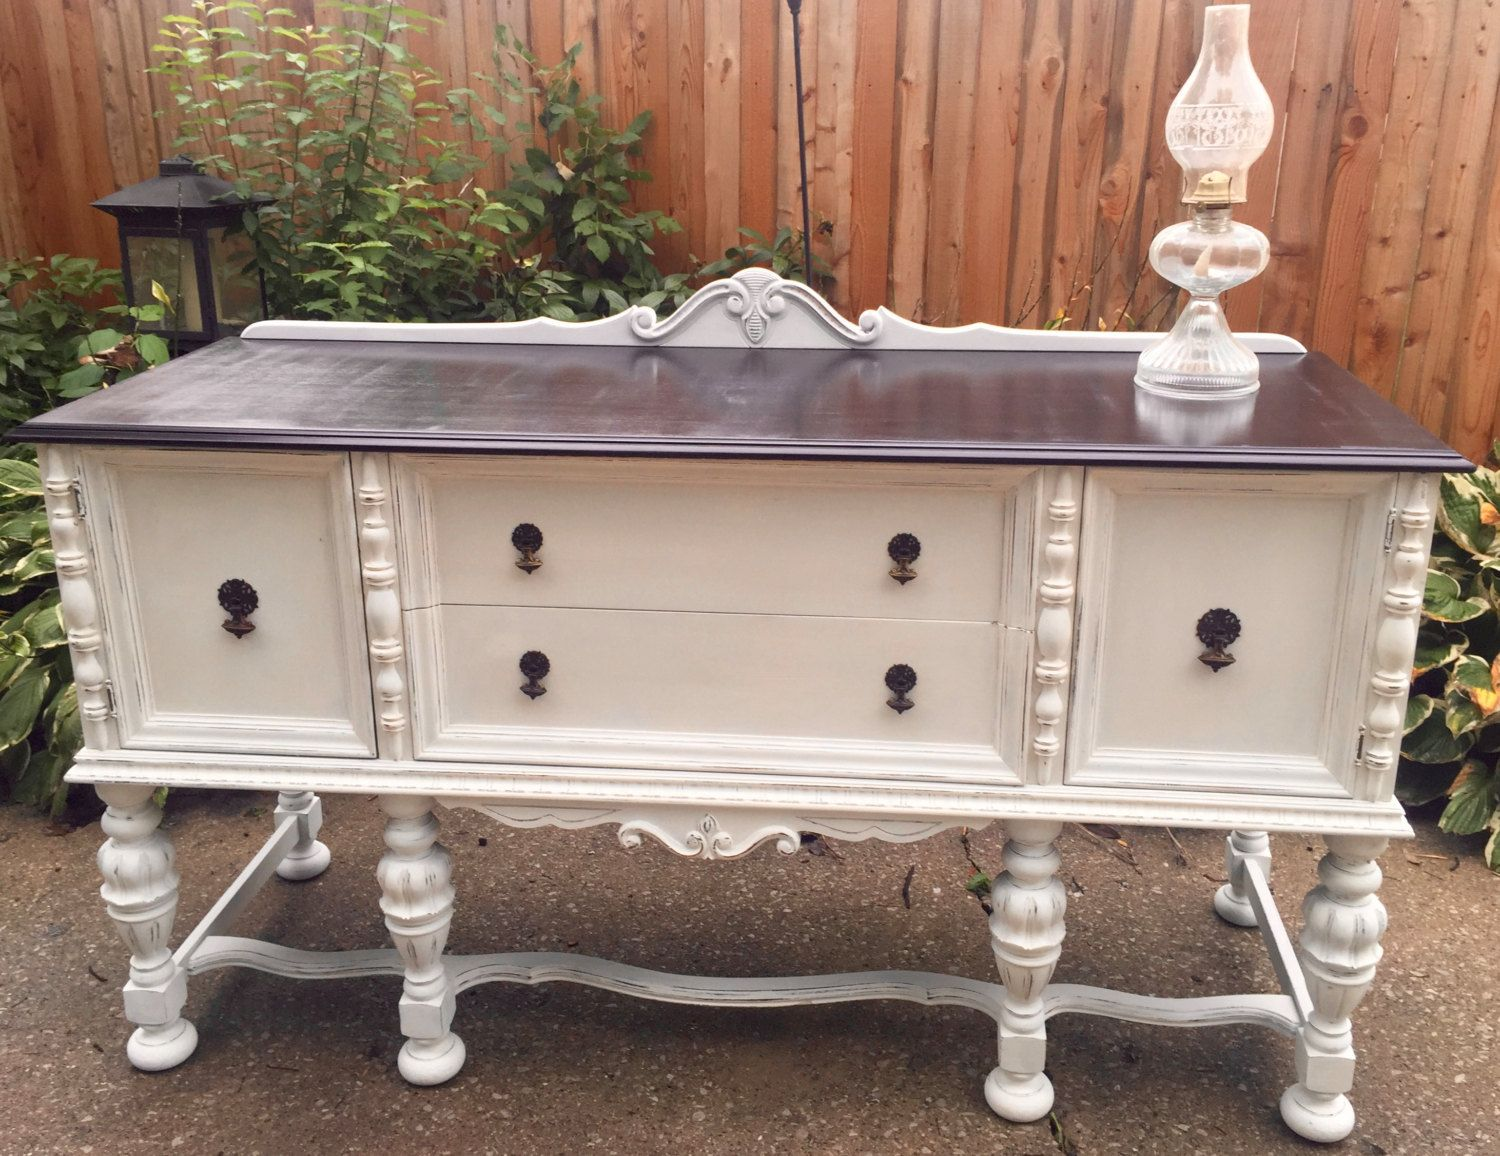 vintagevintage ornate buffet shabby chic buffet 1930 39 s buffet white furniture stained top. Black Bedroom Furniture Sets. Home Design Ideas